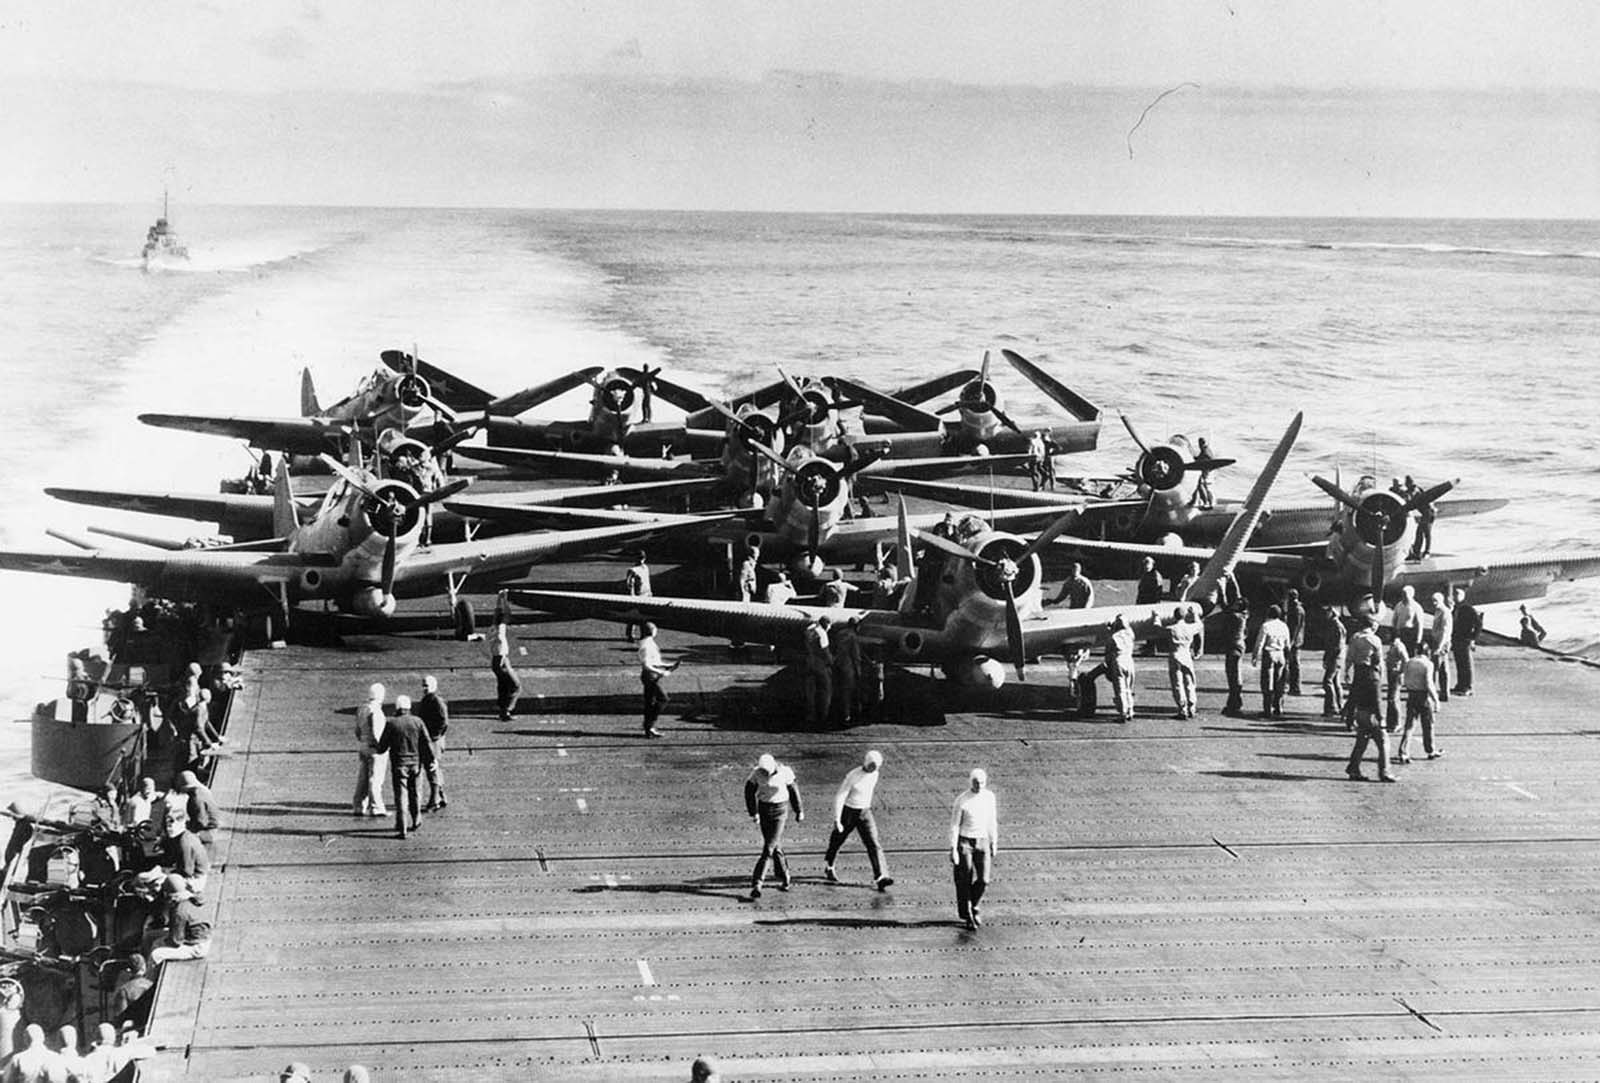 TBD-1 torpedo bombers of Torpedo Squadron Six unfold their wings on the deck of USS Enterprise prior to launching an attack against four Japanese carriers on the first day of the Battle of Midway. Launched on the morning of June 4, 1942, against the Japanese carrier fleet during the Battle of Midway, the squadron lost ten of fourteen aircraft during their attack.